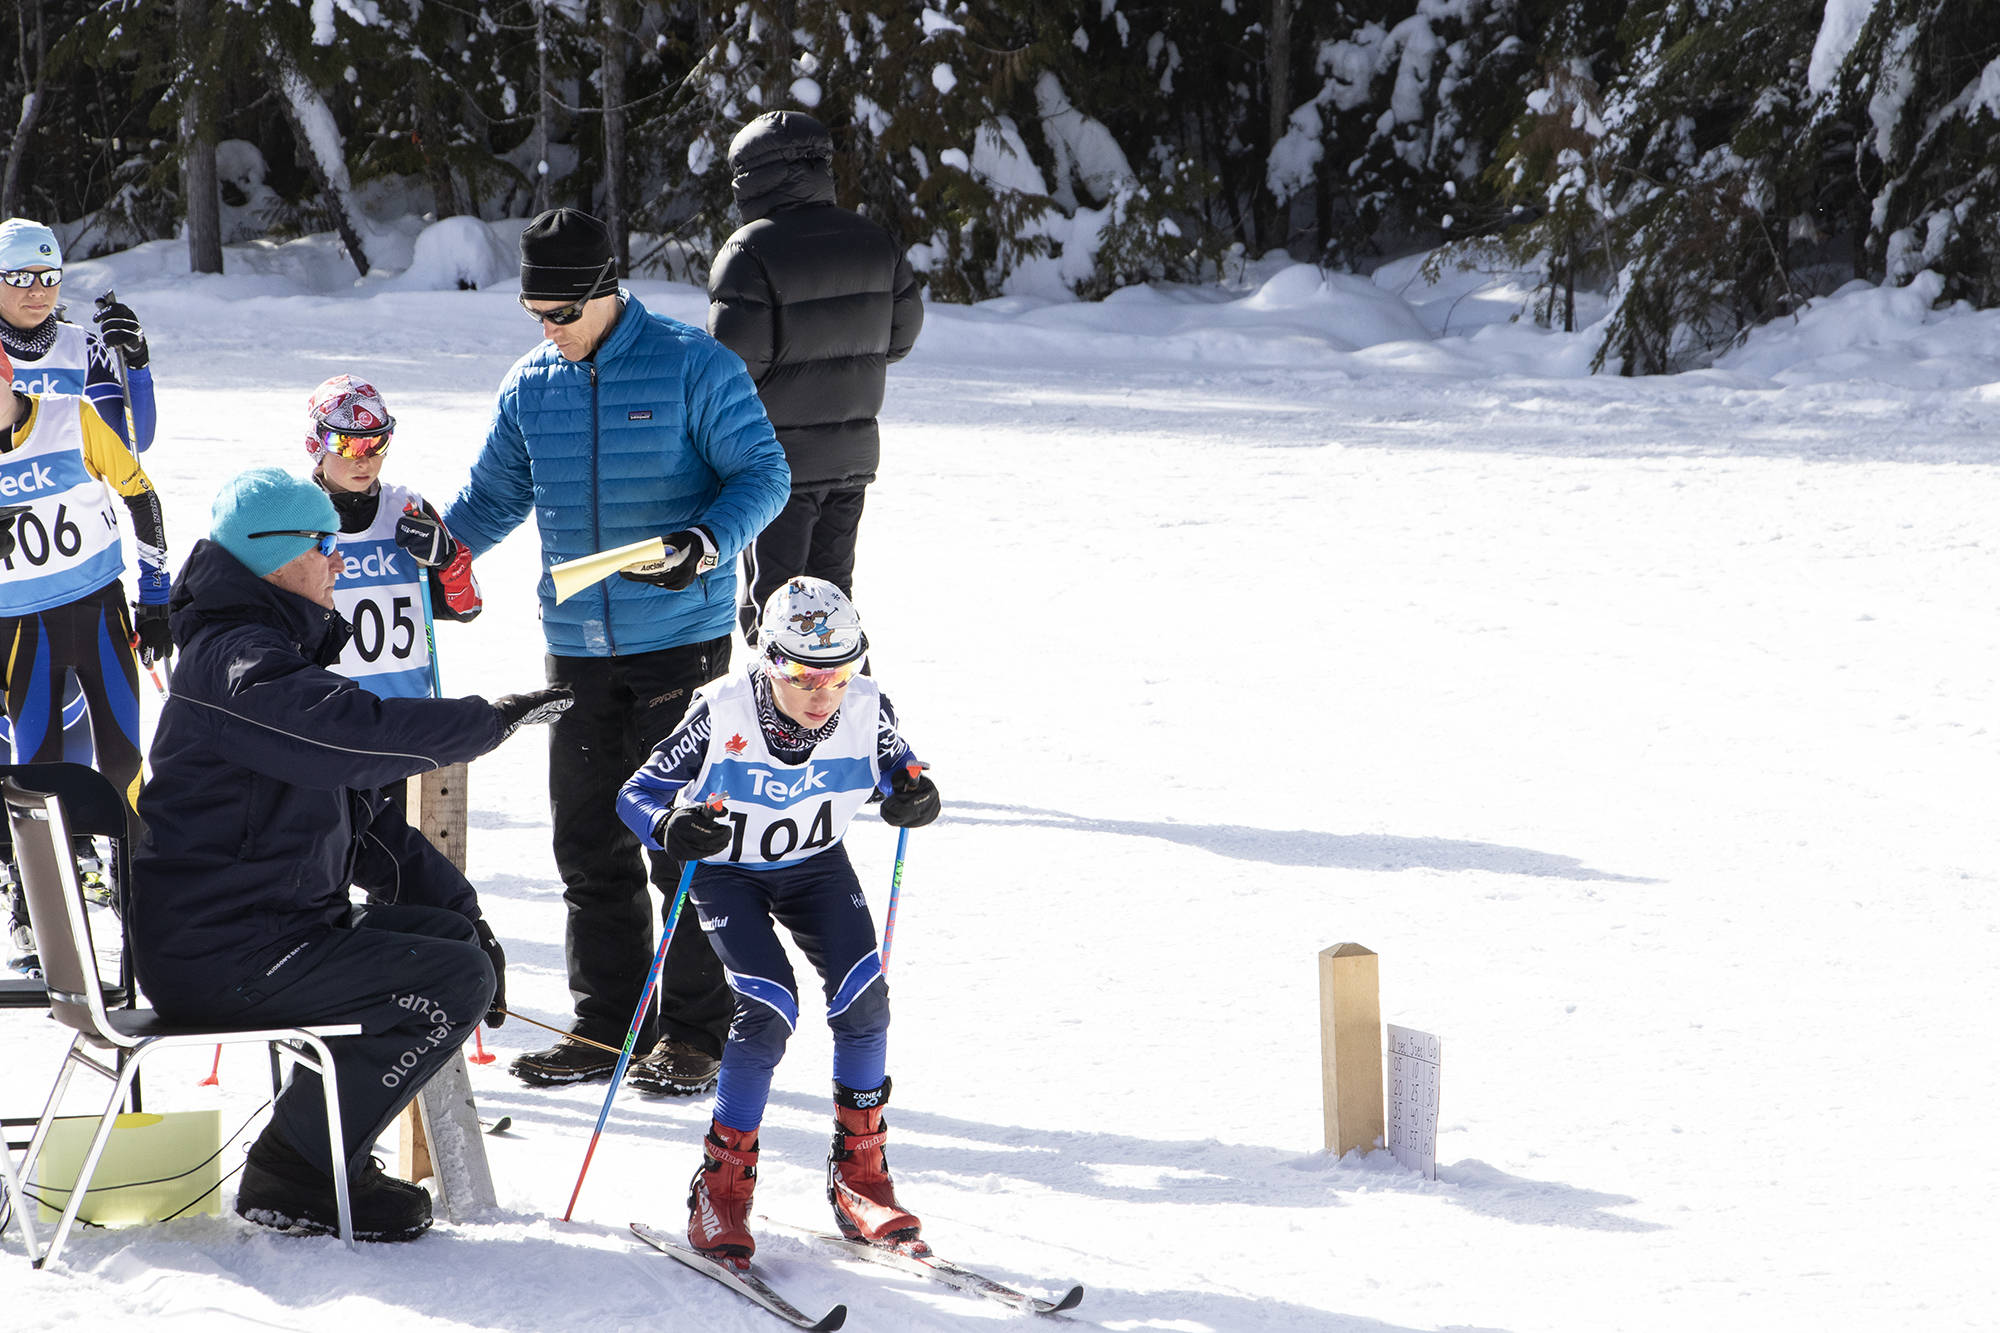 Cyrus Nabavi of the Hollyburn Ski Club hunkers down, ready to launch off as the start clock counts down during the Teck BC Championships. (Jodi Brak/Salmon Arm Observer)